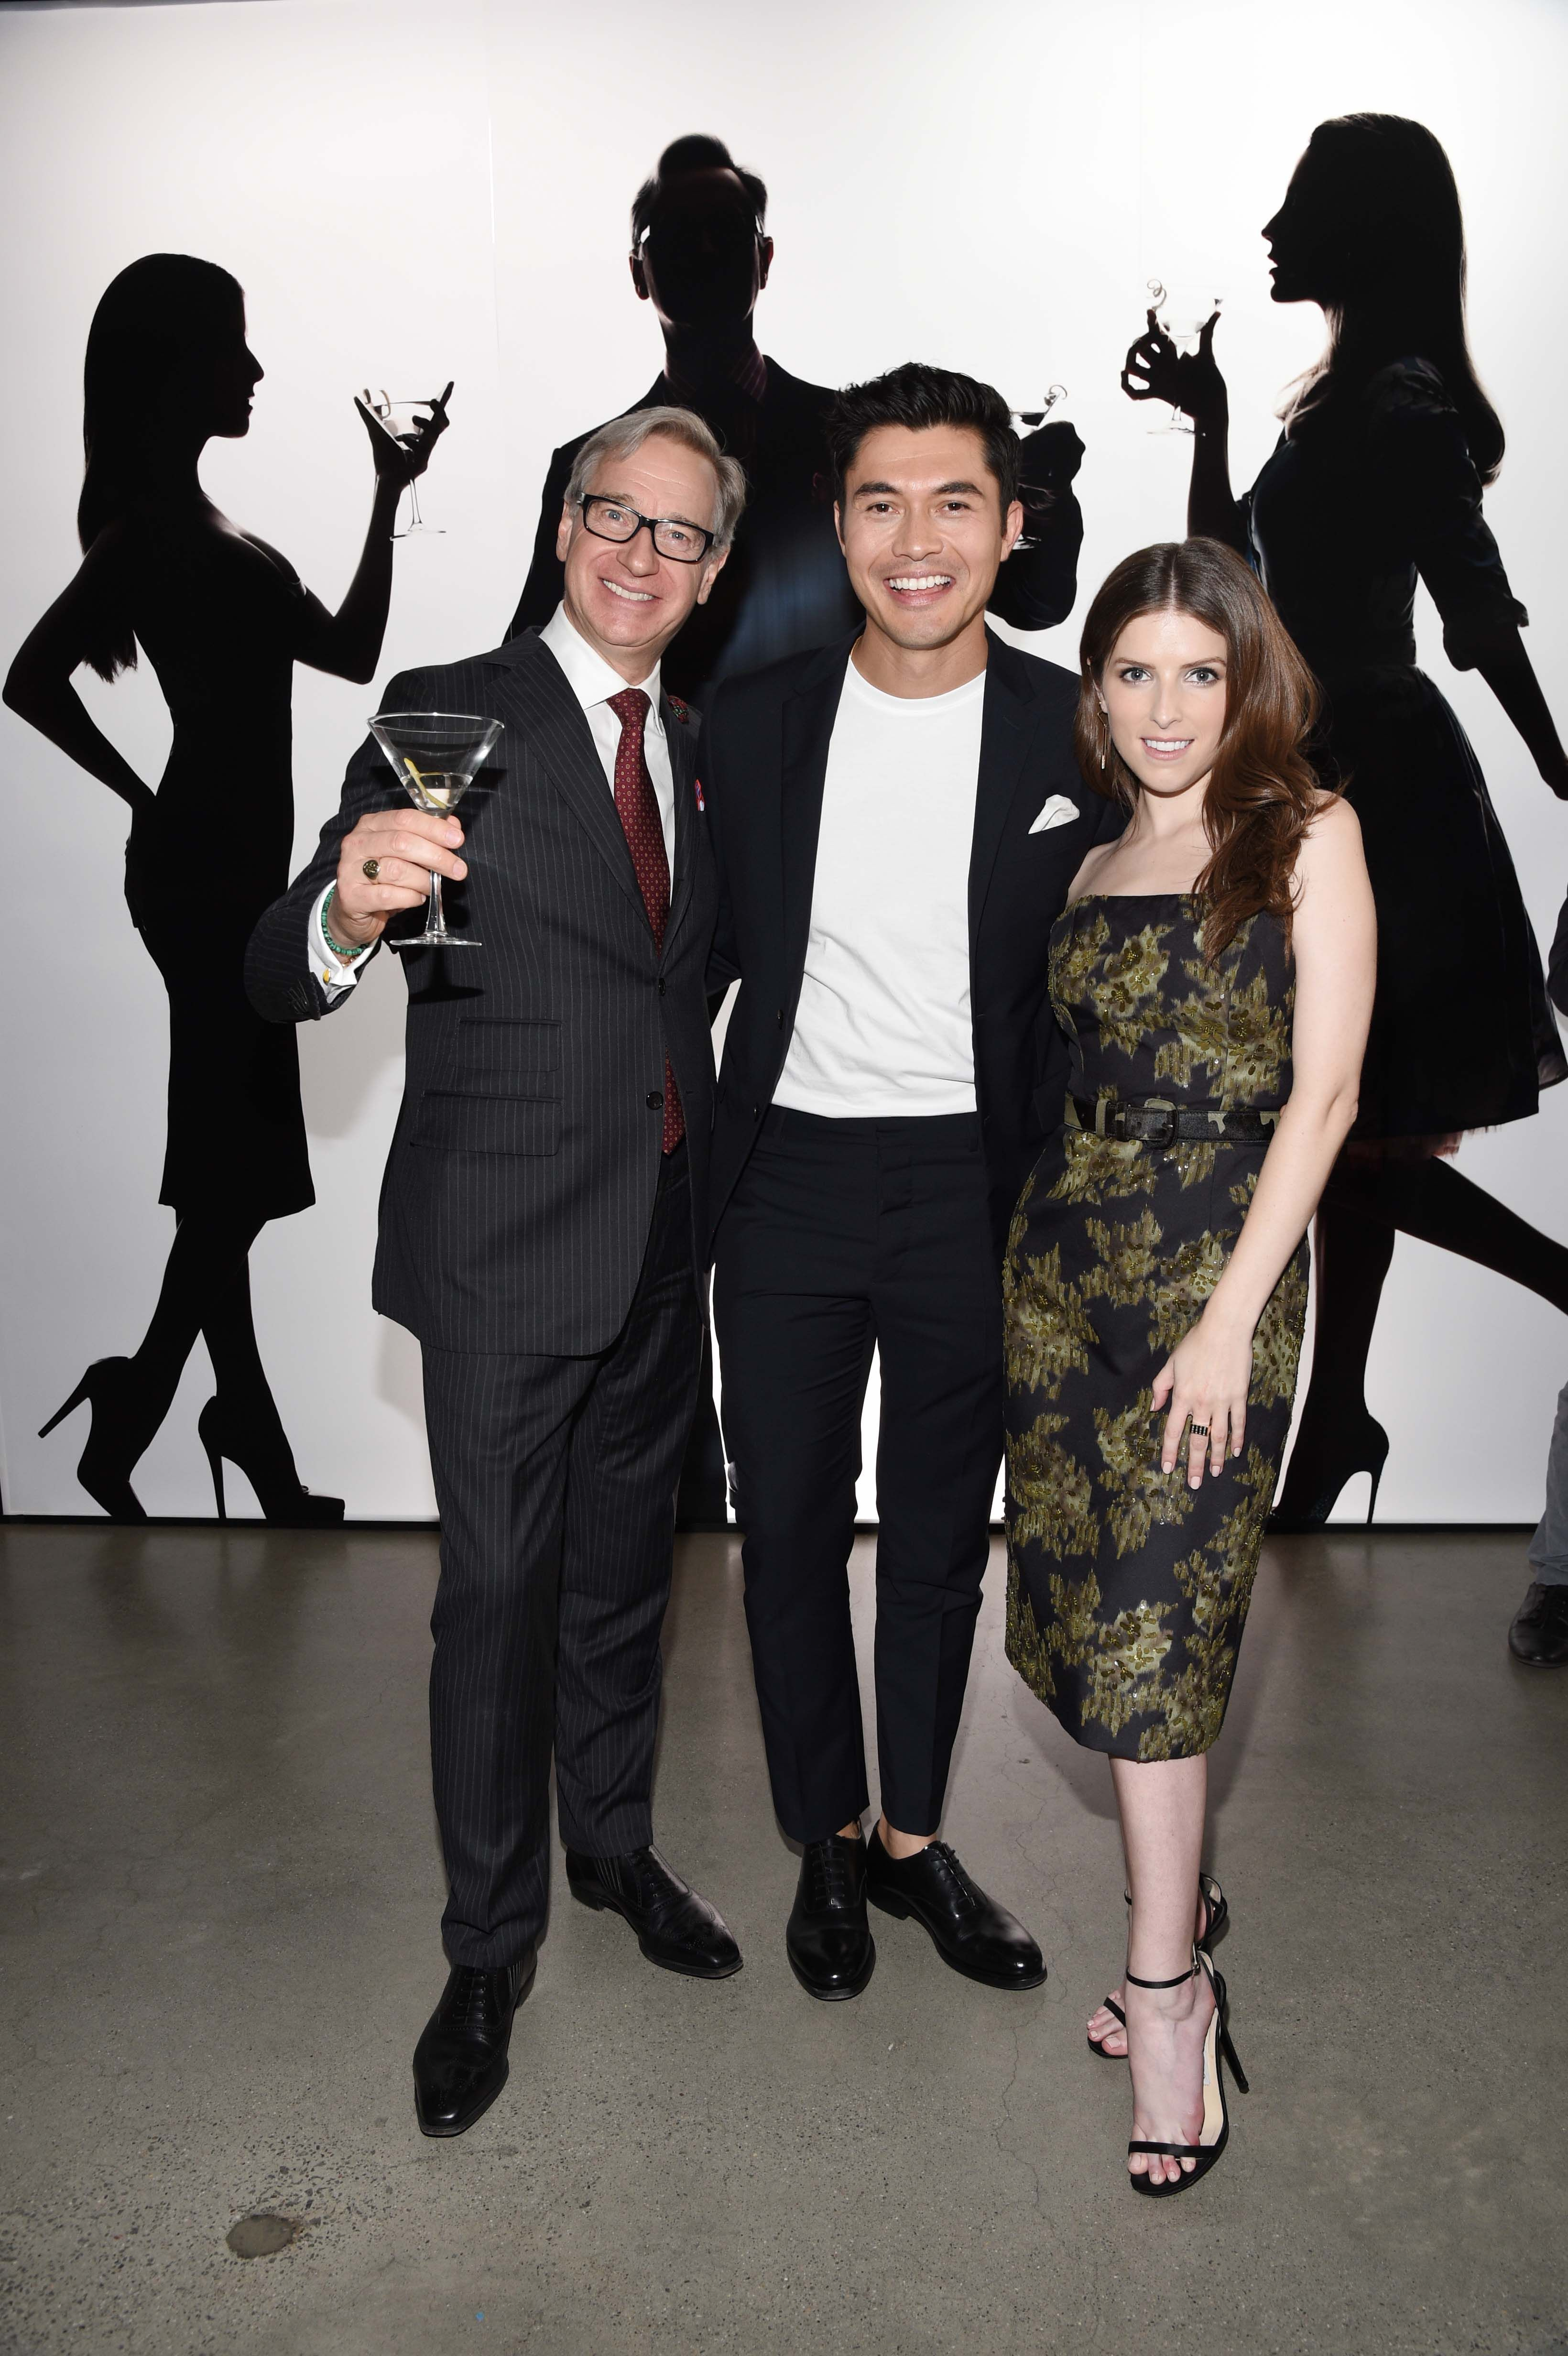 Paul Feig Henry Golding And Anna Kendrick At The A Simple Favor